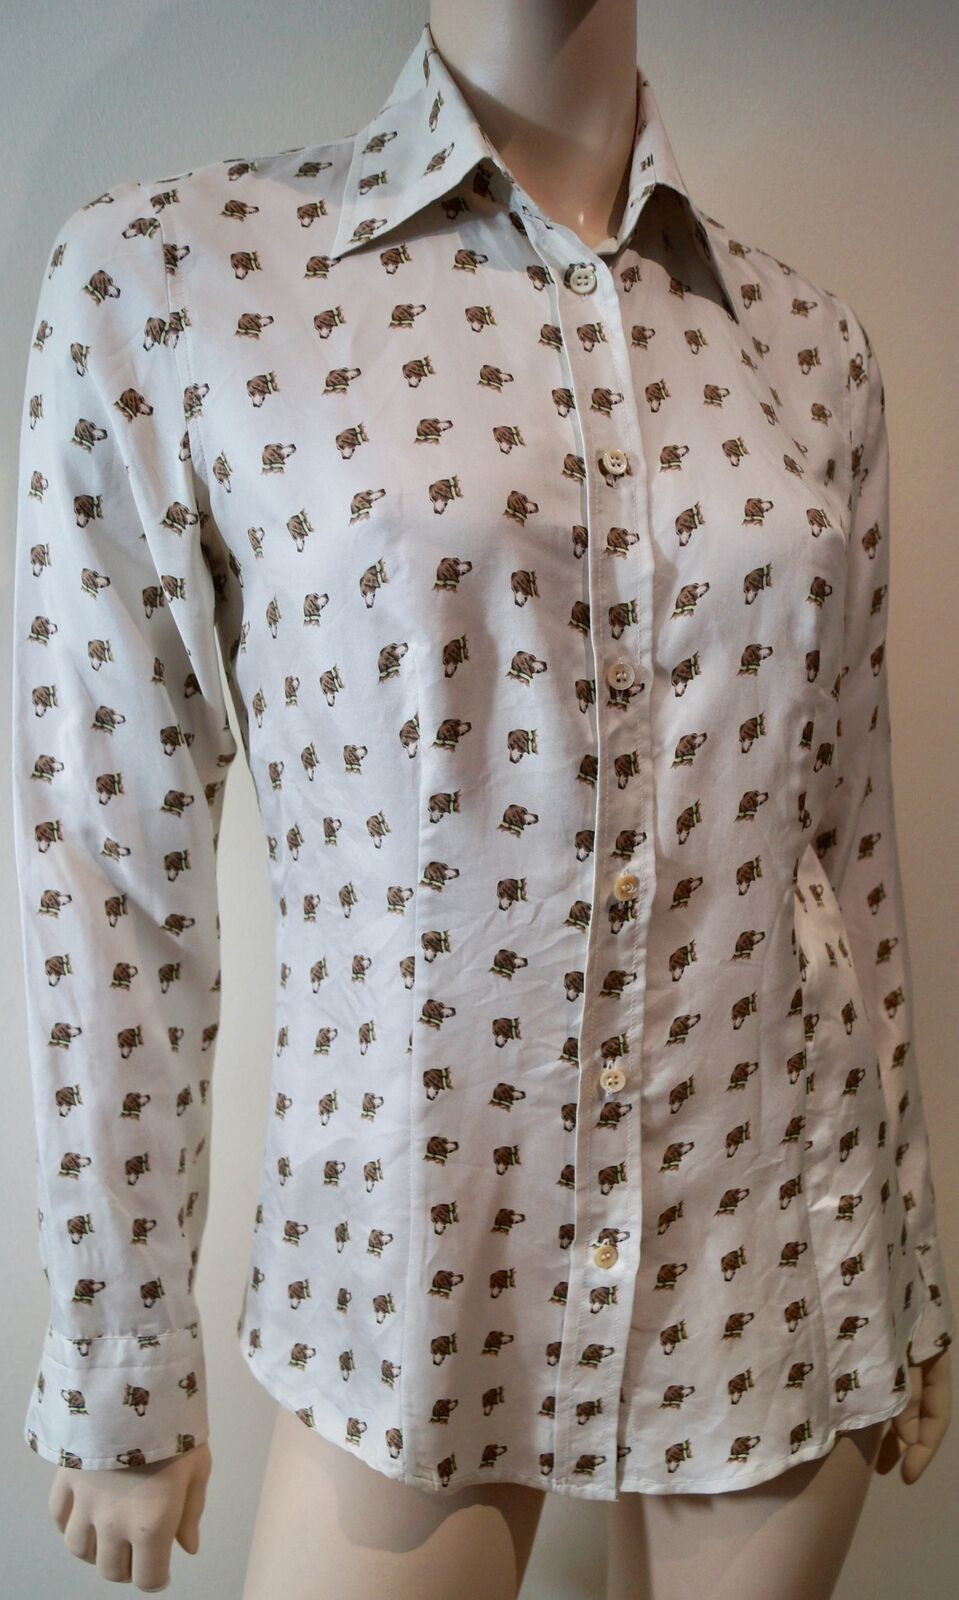 ETRO Womens Cream 100% Silk Beagle Dog Print Collared Blouse Shirt Top IT44 UK12